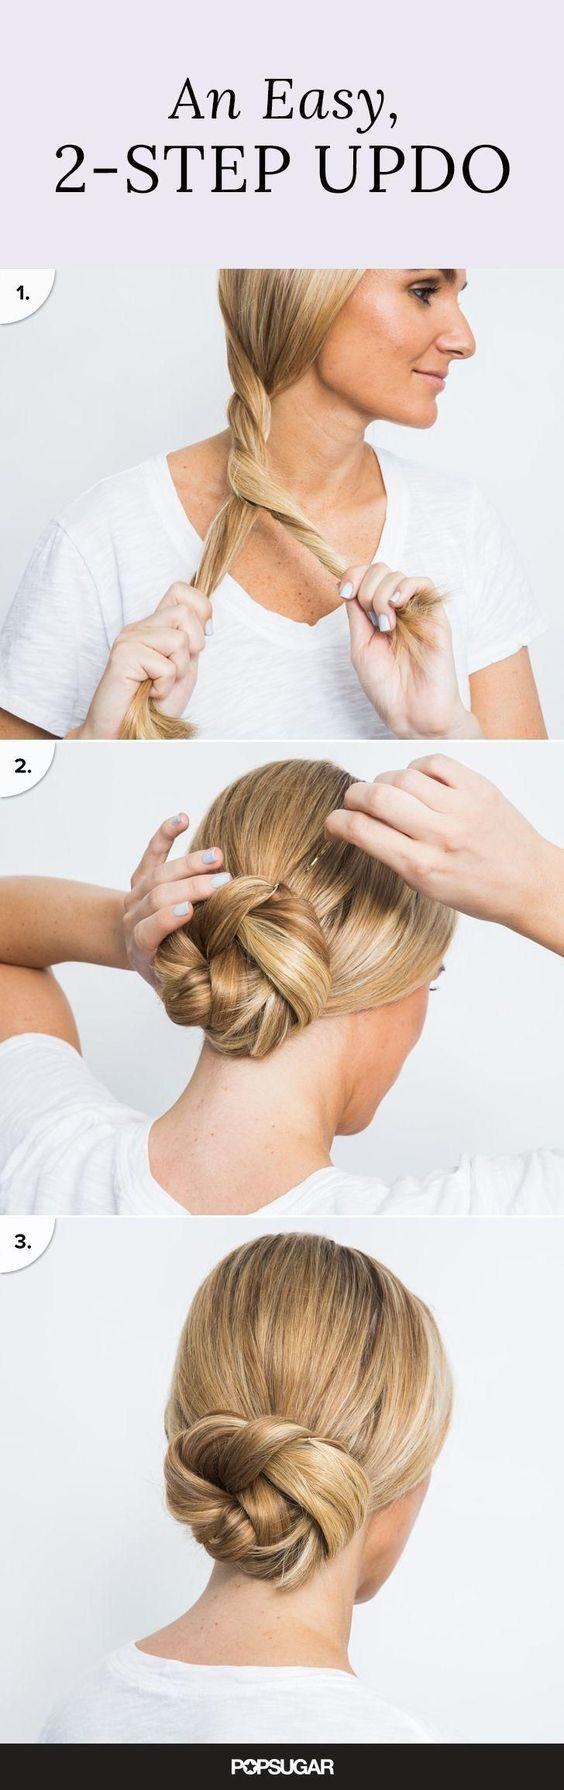 Professional hairstyles differ depending on the job, but the most important thing to remember in any environment is respect. While personal style is important, it is equally important to be a team player and stick to the proposed dress code. Luckily, there are many looks to choose from whether they are braids and messy buns …